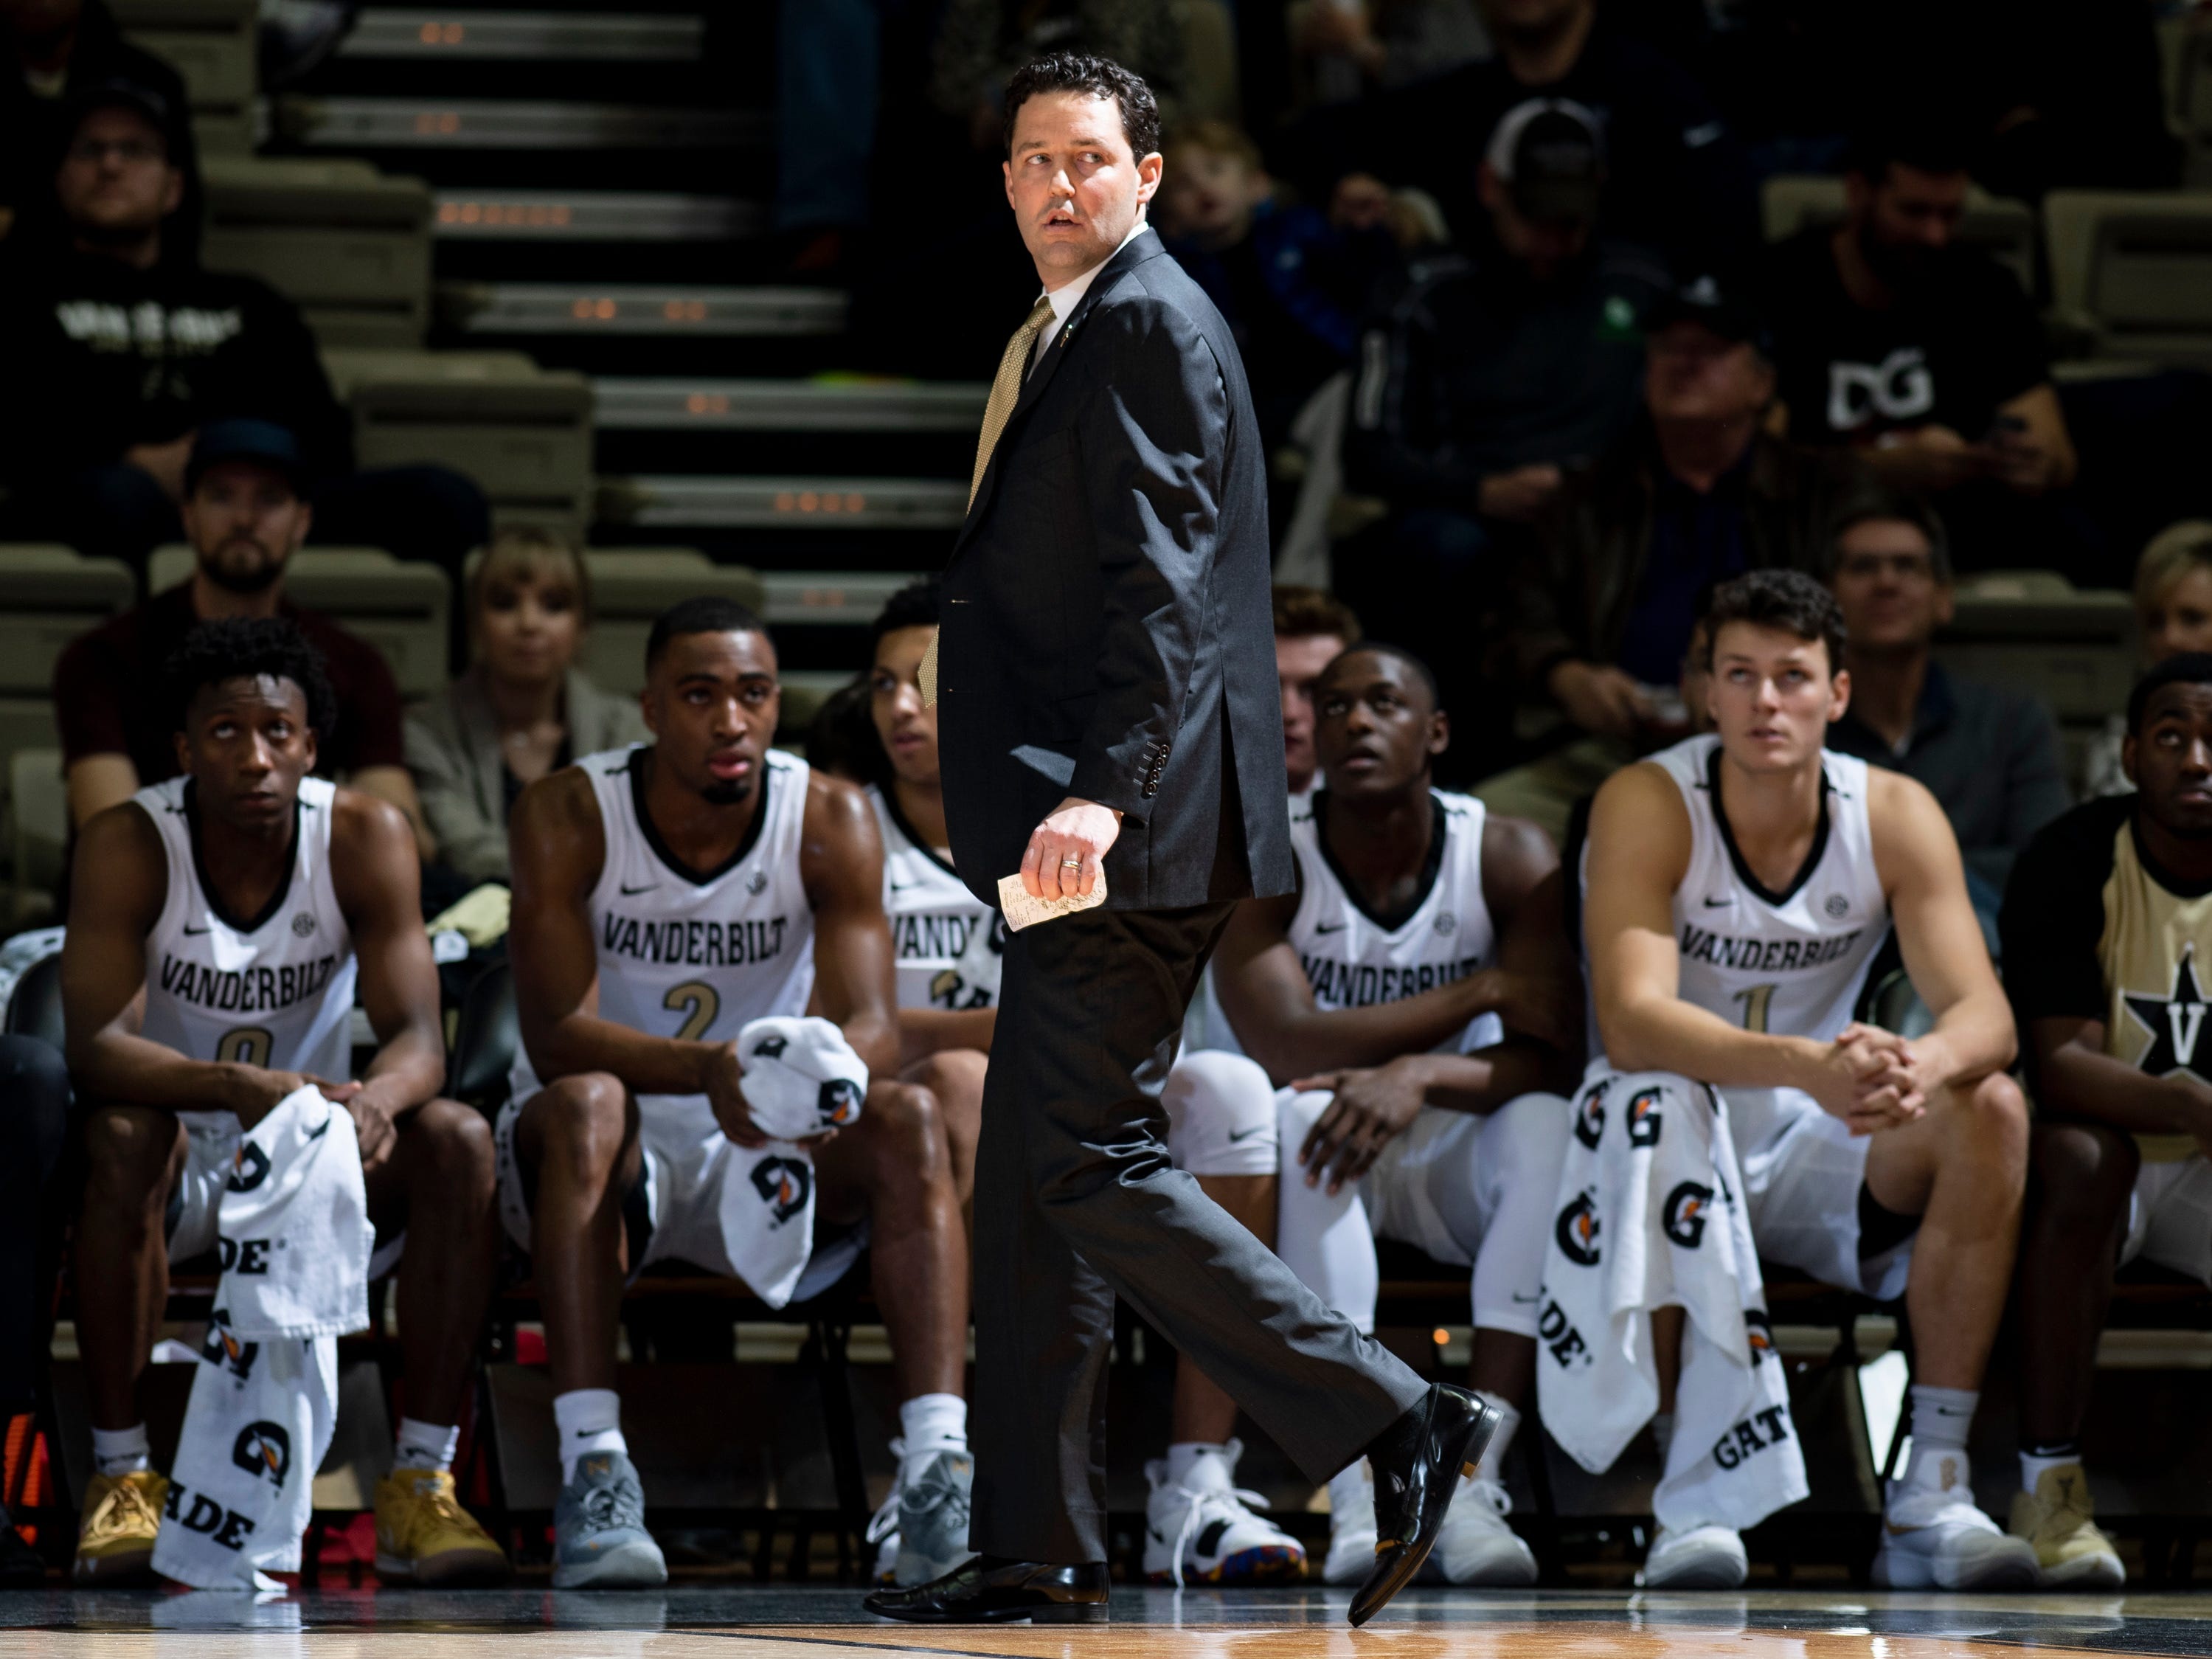 Vanderbilt head coach Bryce Drew watches his team face Alcorn State during the second half at Memorial Gym in Nashville, Tenn., Friday, Nov. 16, 2018.